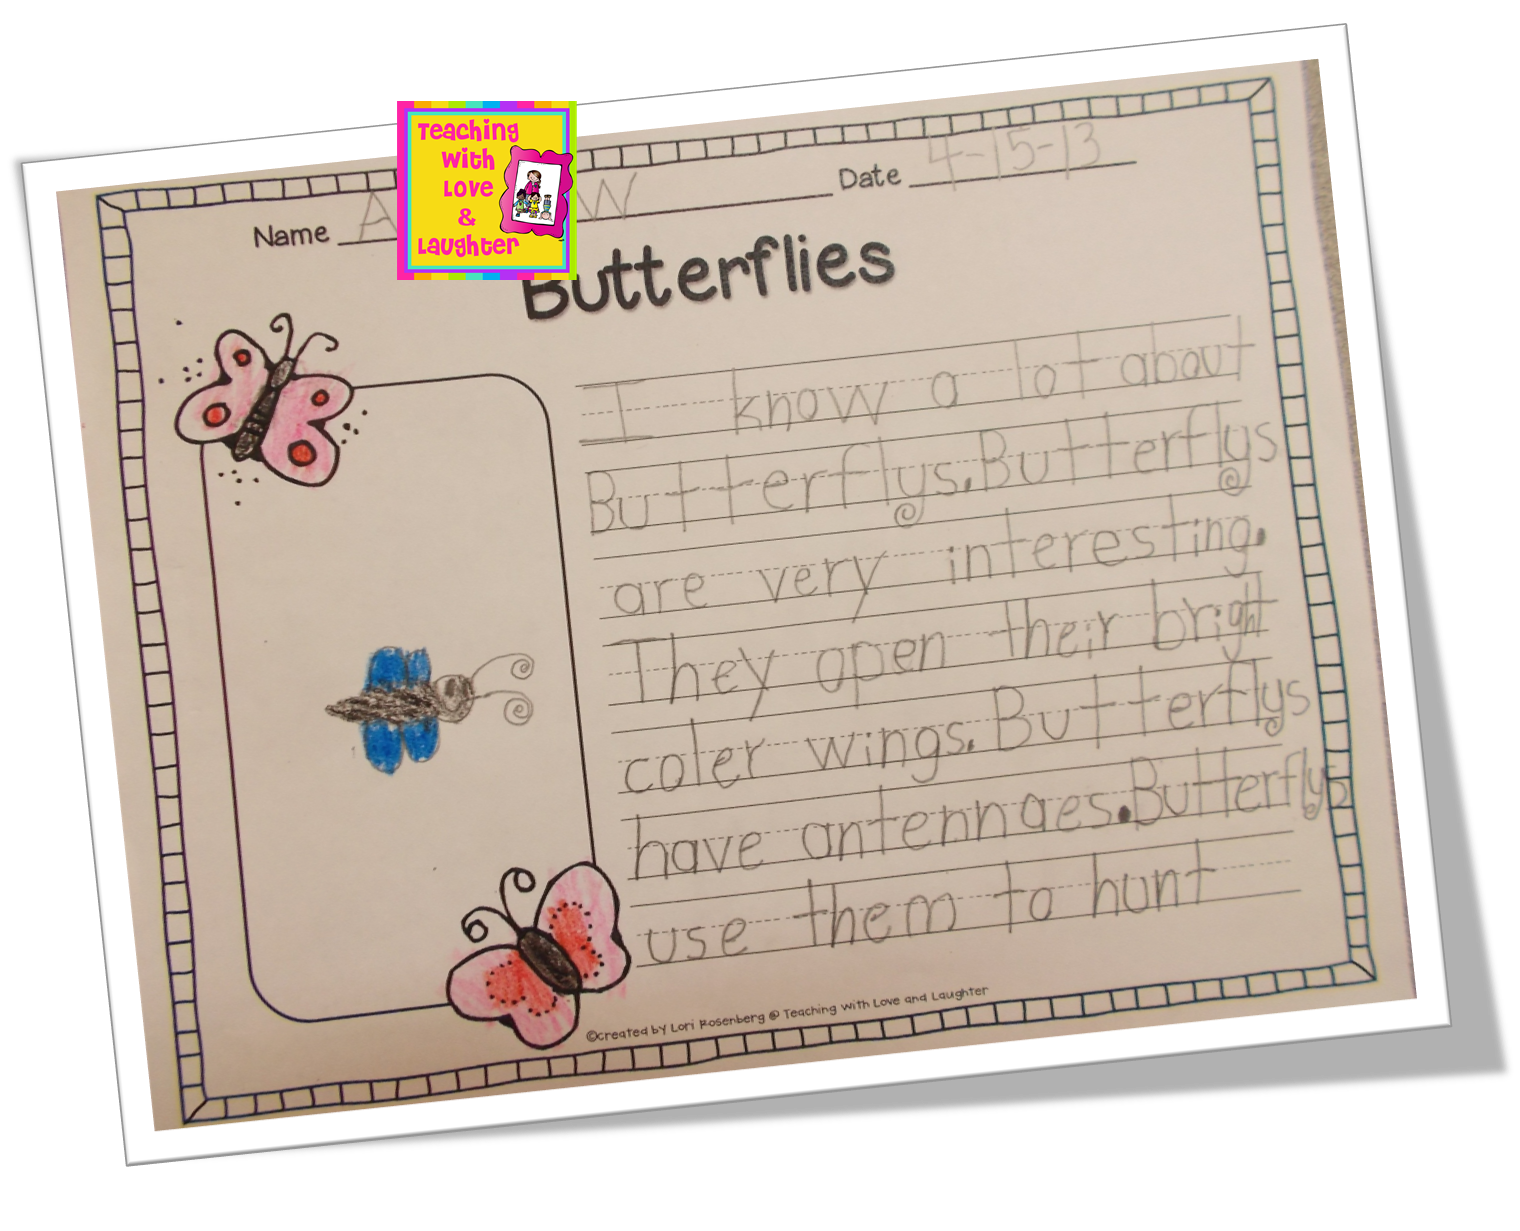 teaching love and laughter second grade interviews they made beautiful butterflies to go their essays but my darn camera battery died before i snapped some pictures here are two sample essays